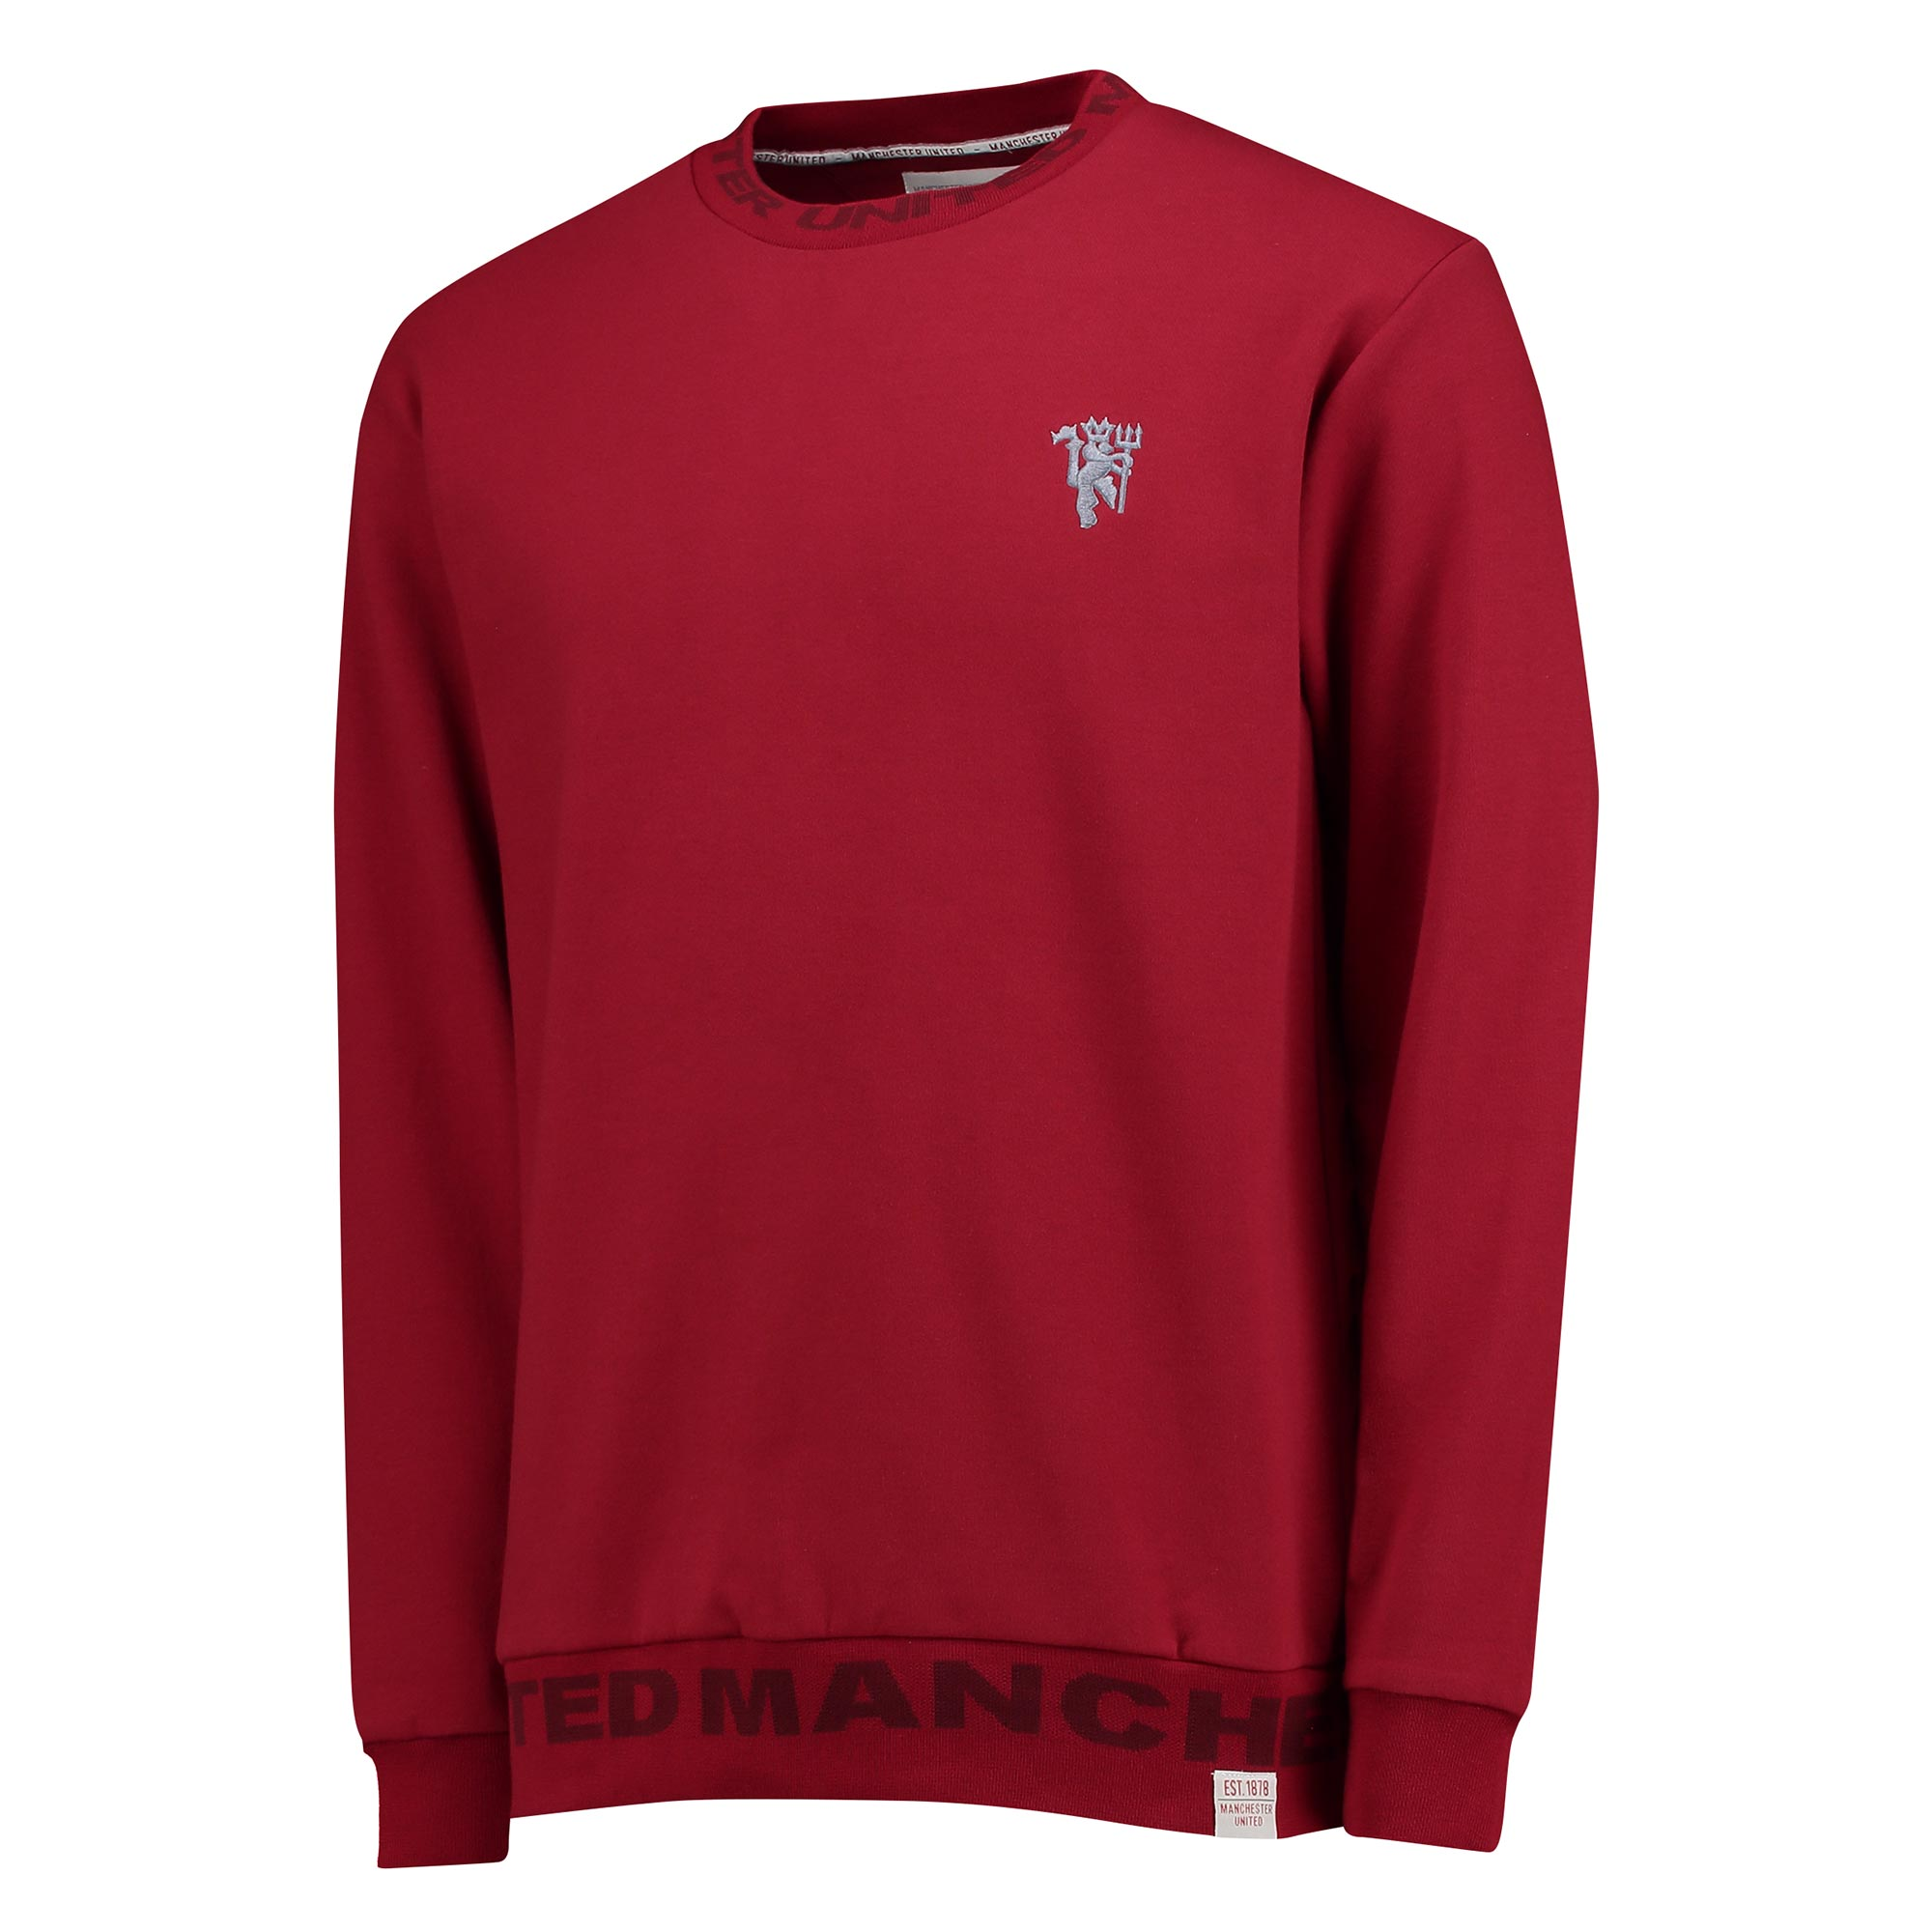 Manchester United Lifestyle Crew Neck Sweater - Brick Red - Mens